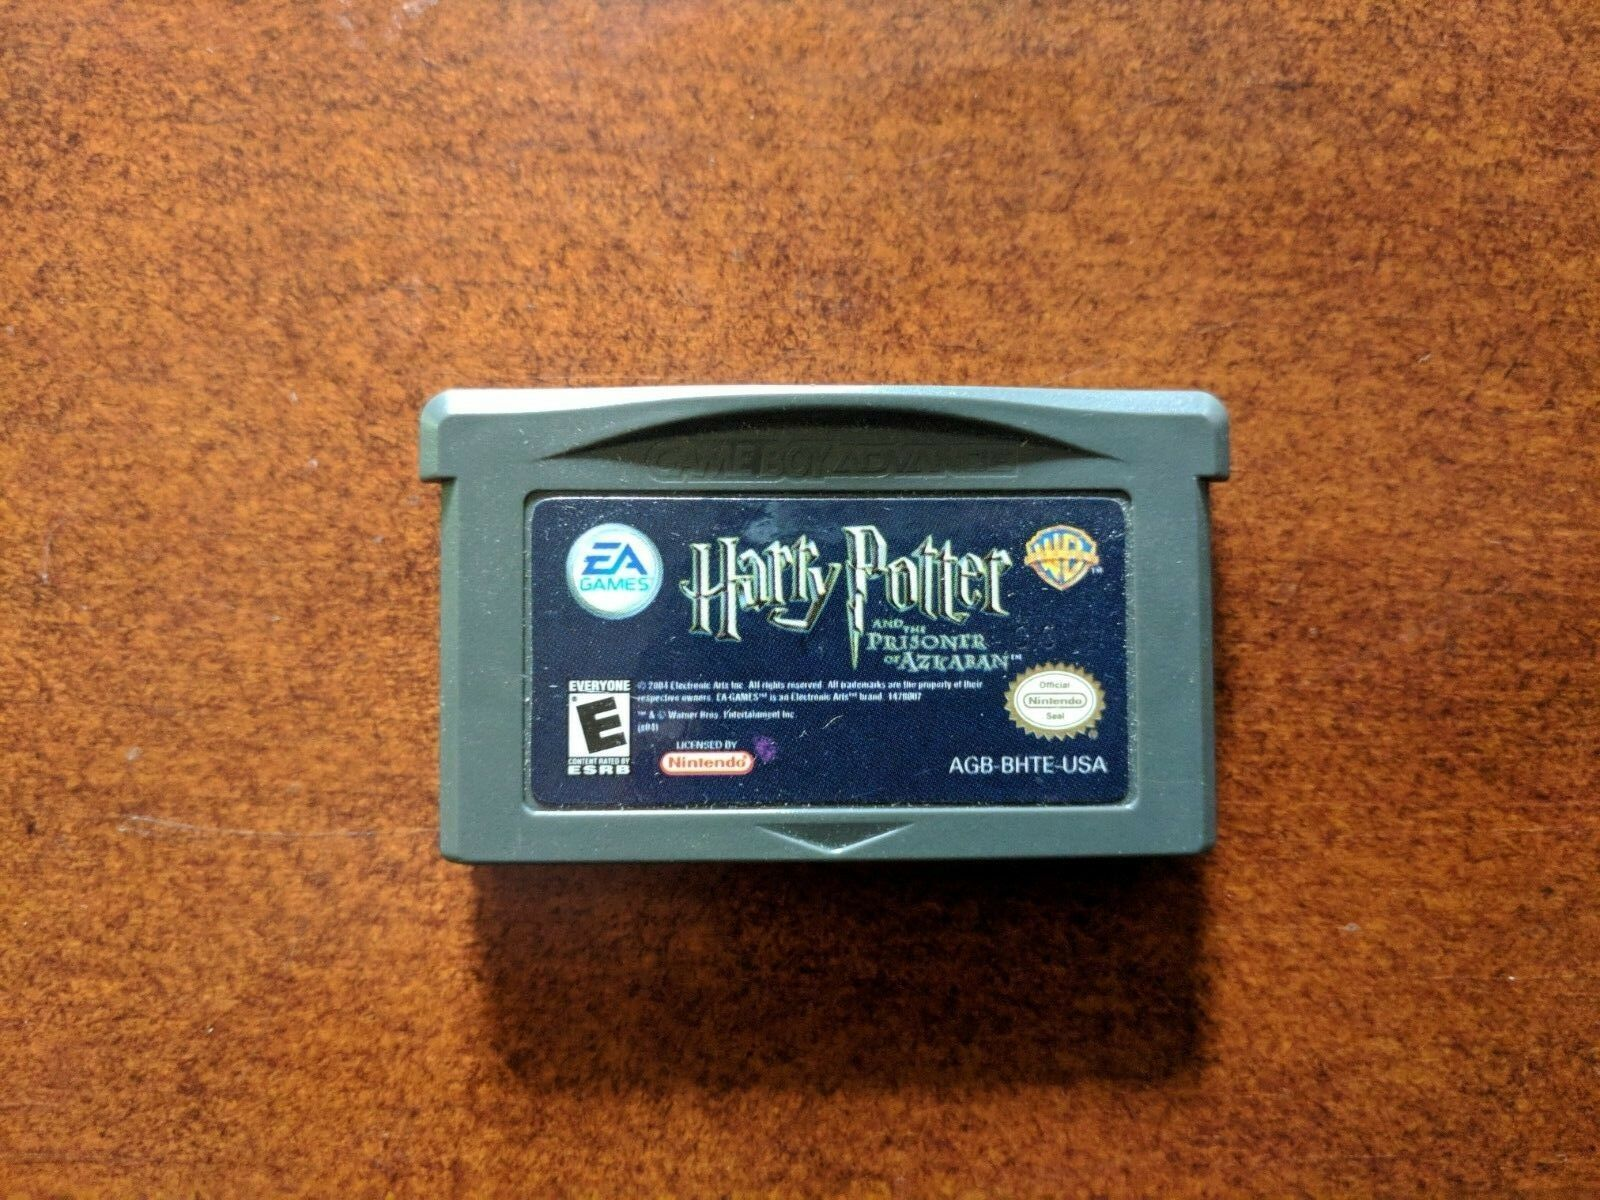 Harry Potter and the Prisoner of Azkaban Nintendo Game Boy Advance GBA Authentic